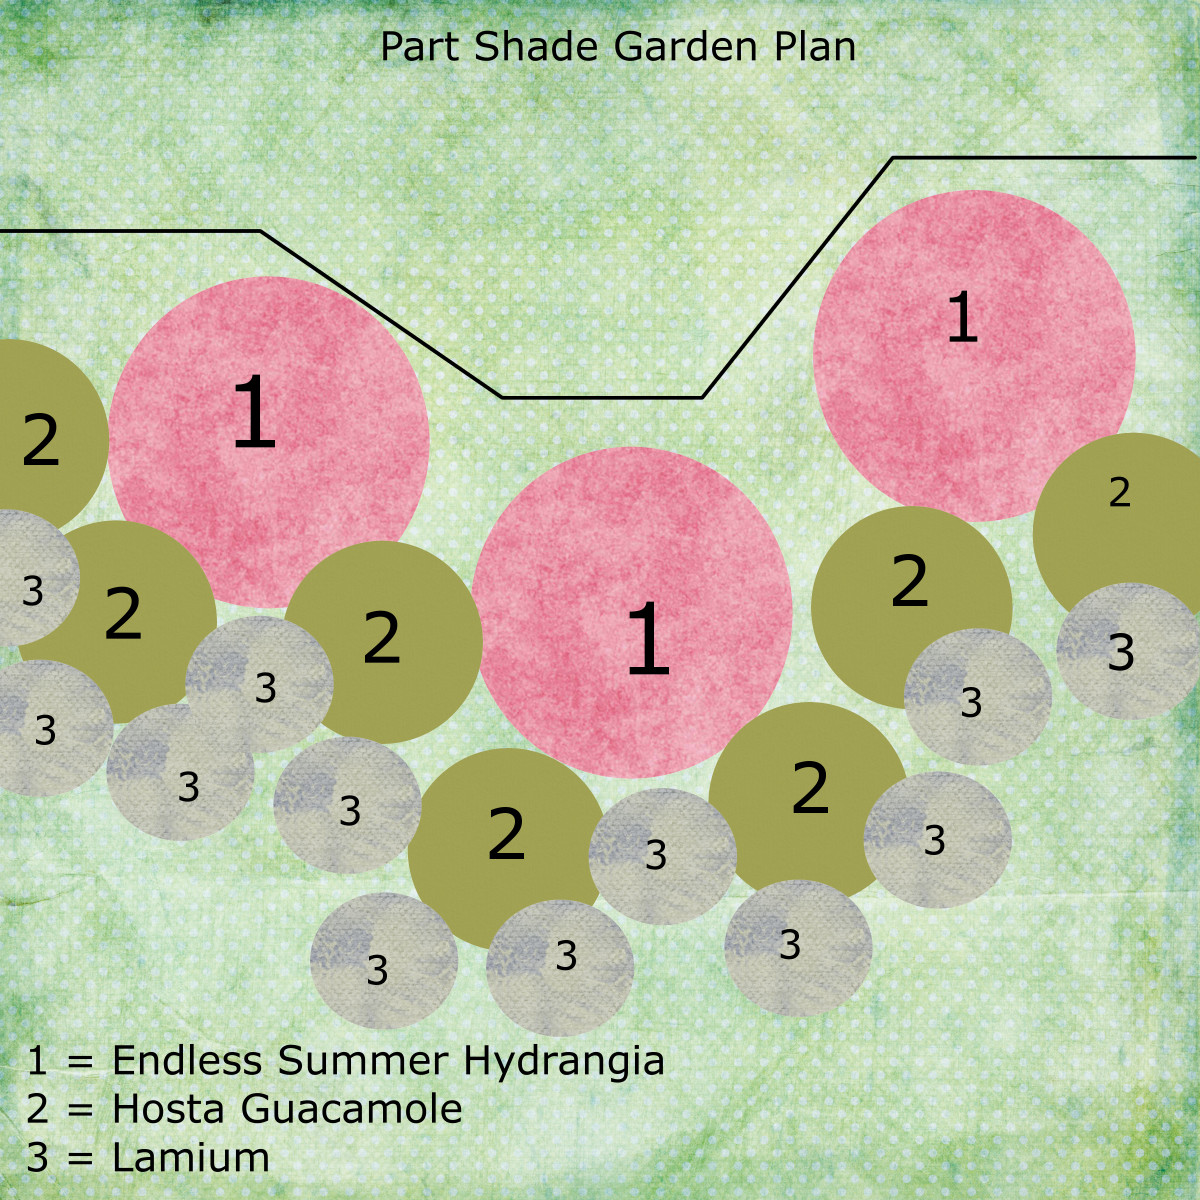 How To Design A Simple Garden Plan Dengarden Home And Garden